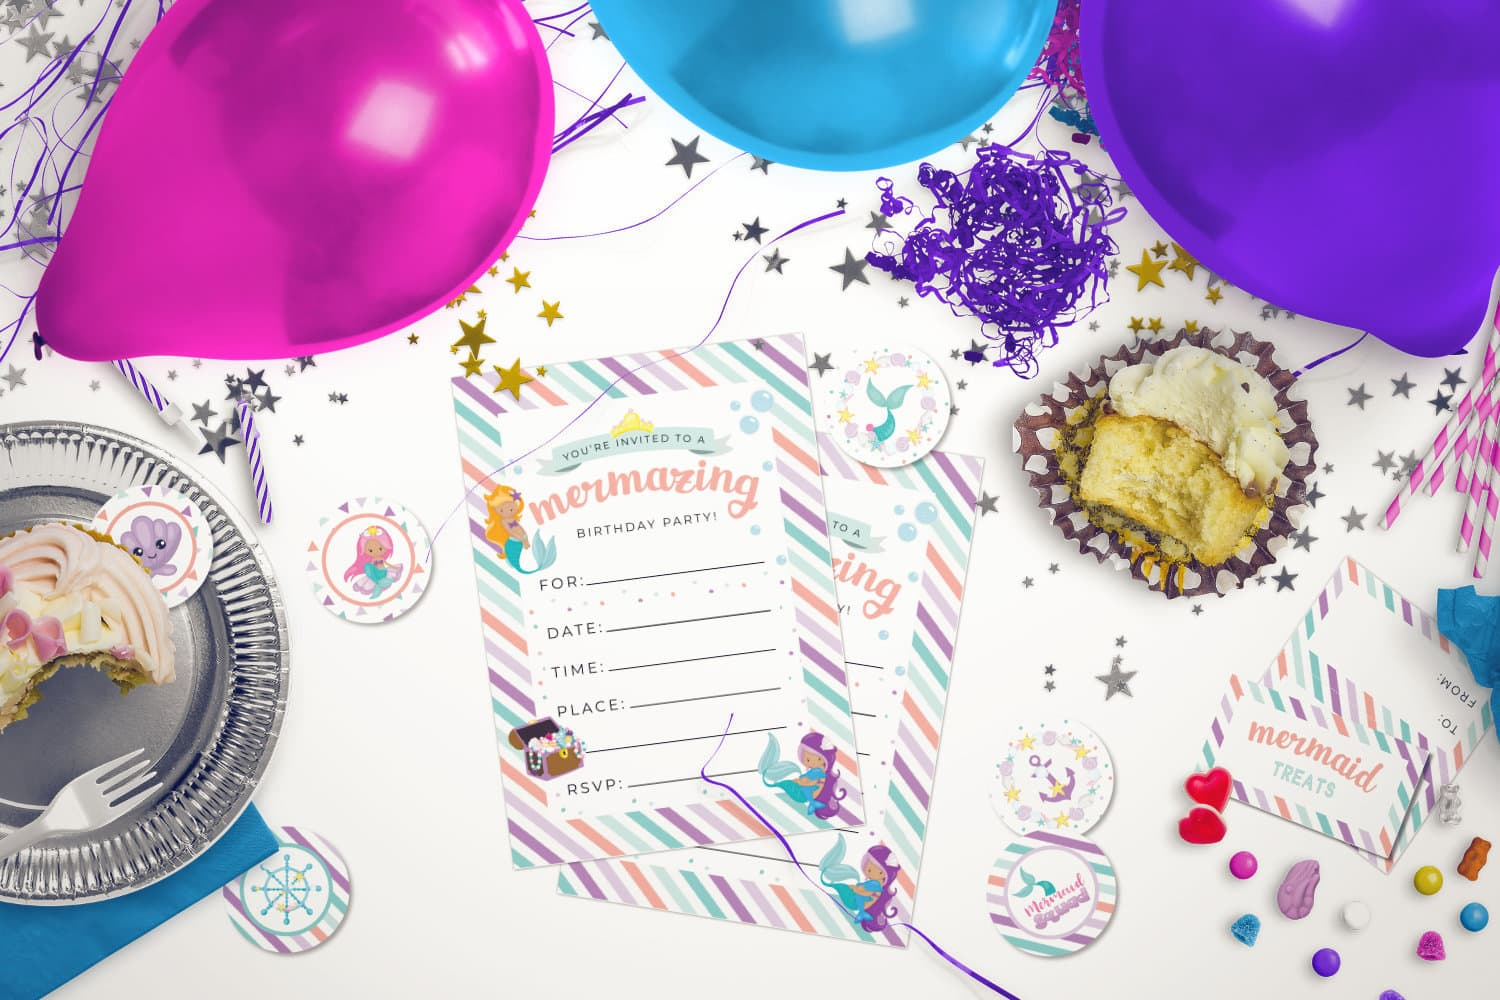 Free Mermaid birthday party printables lying on a decorated table